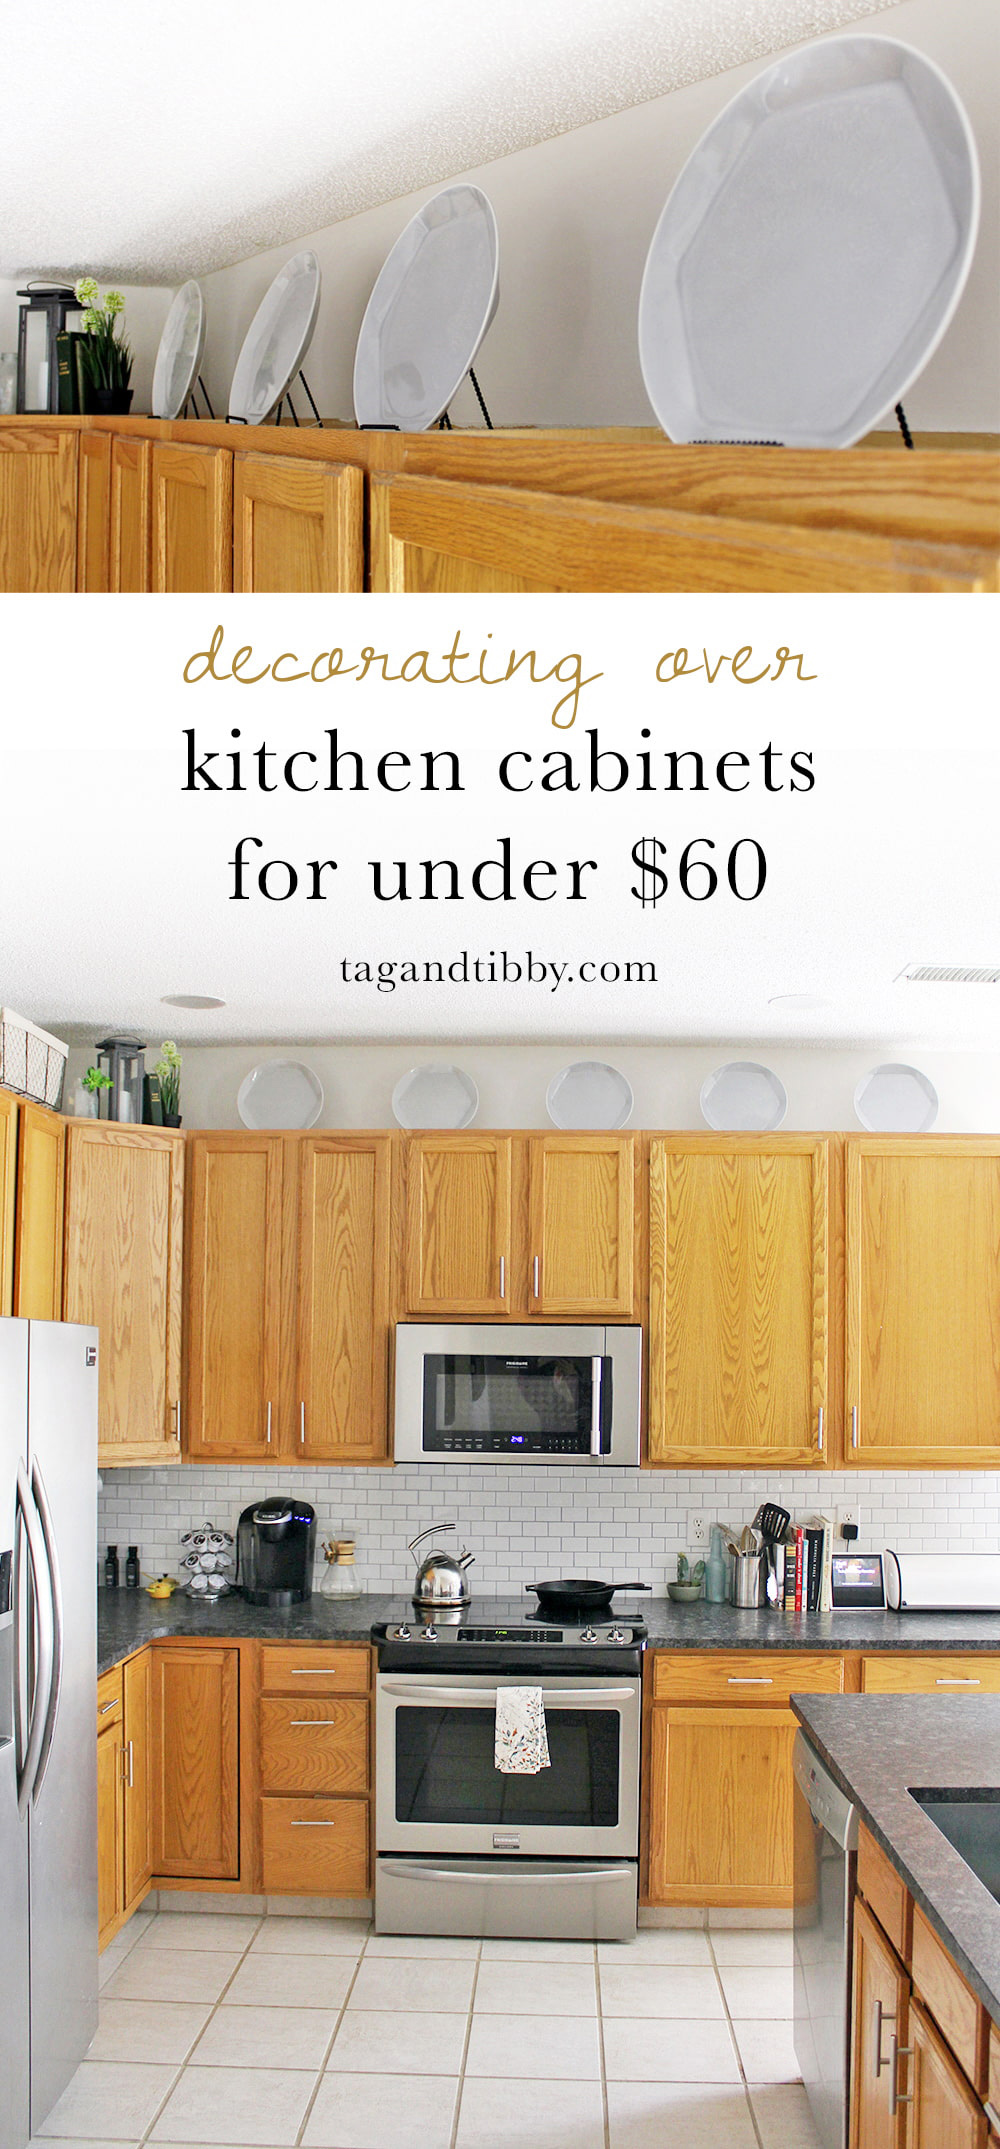 Merveilleux Decorating Over Kitchen Cabinets With Plates For Under $60 #kitchendecor  #budgetdecor